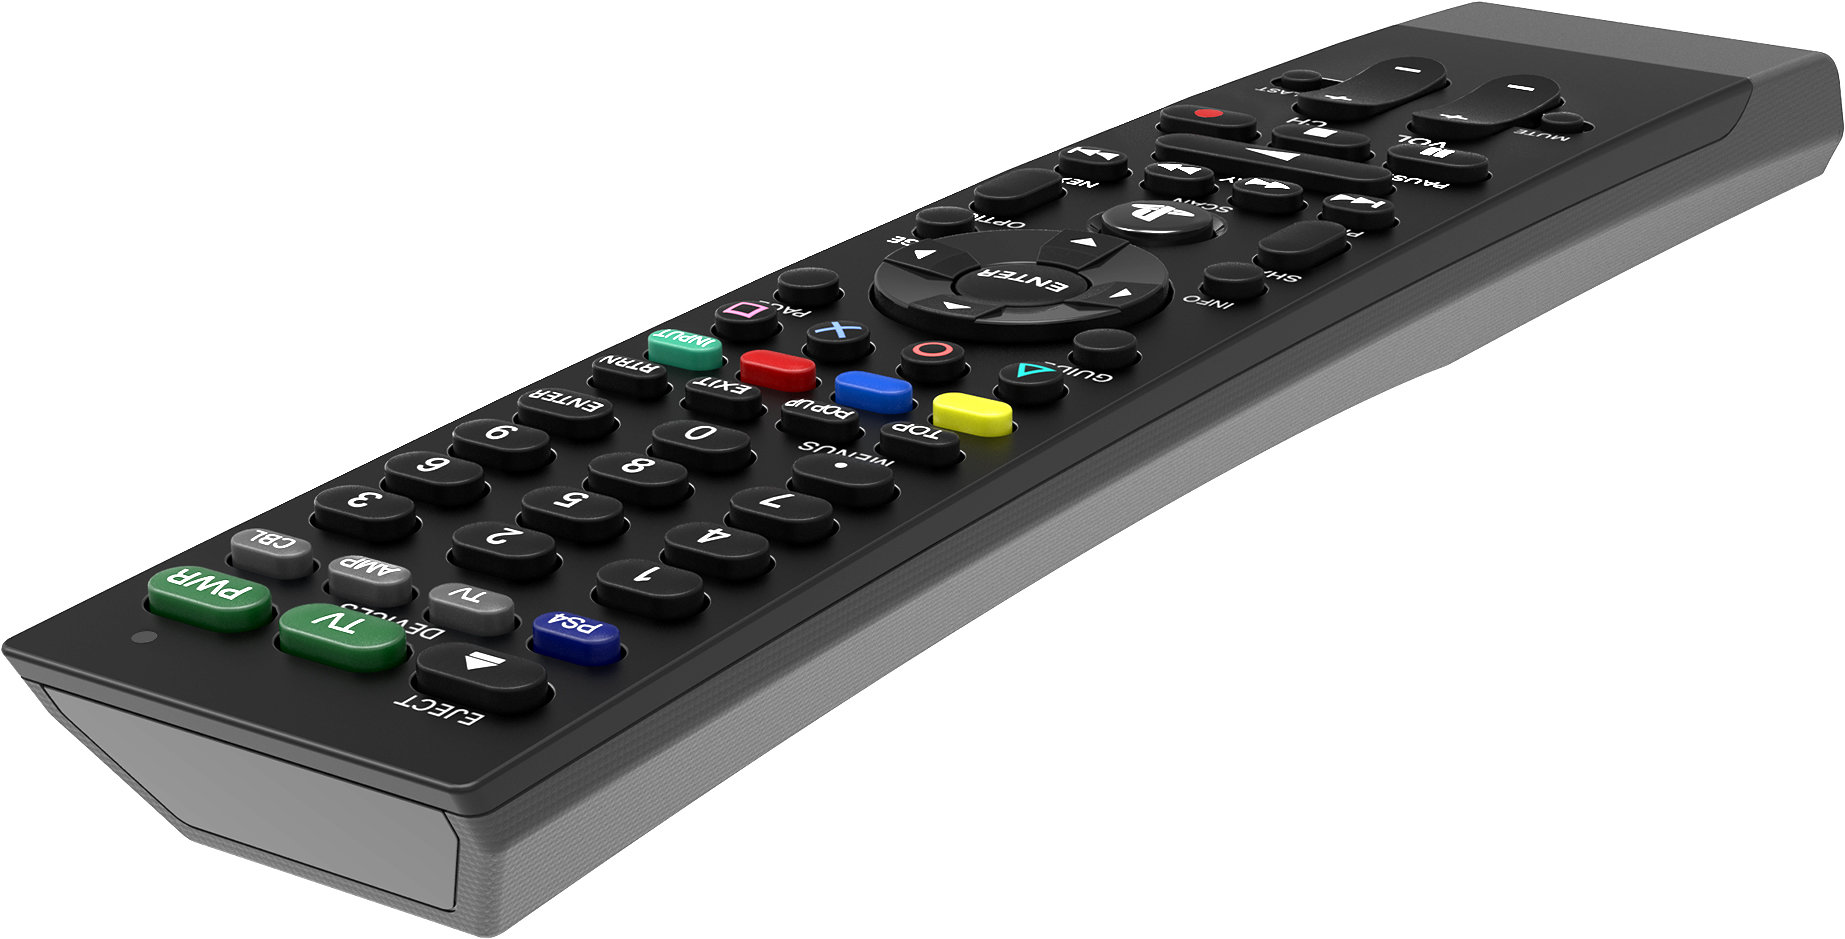 Universal Media Remote for PlayStation®4 – PS4 Remote Control